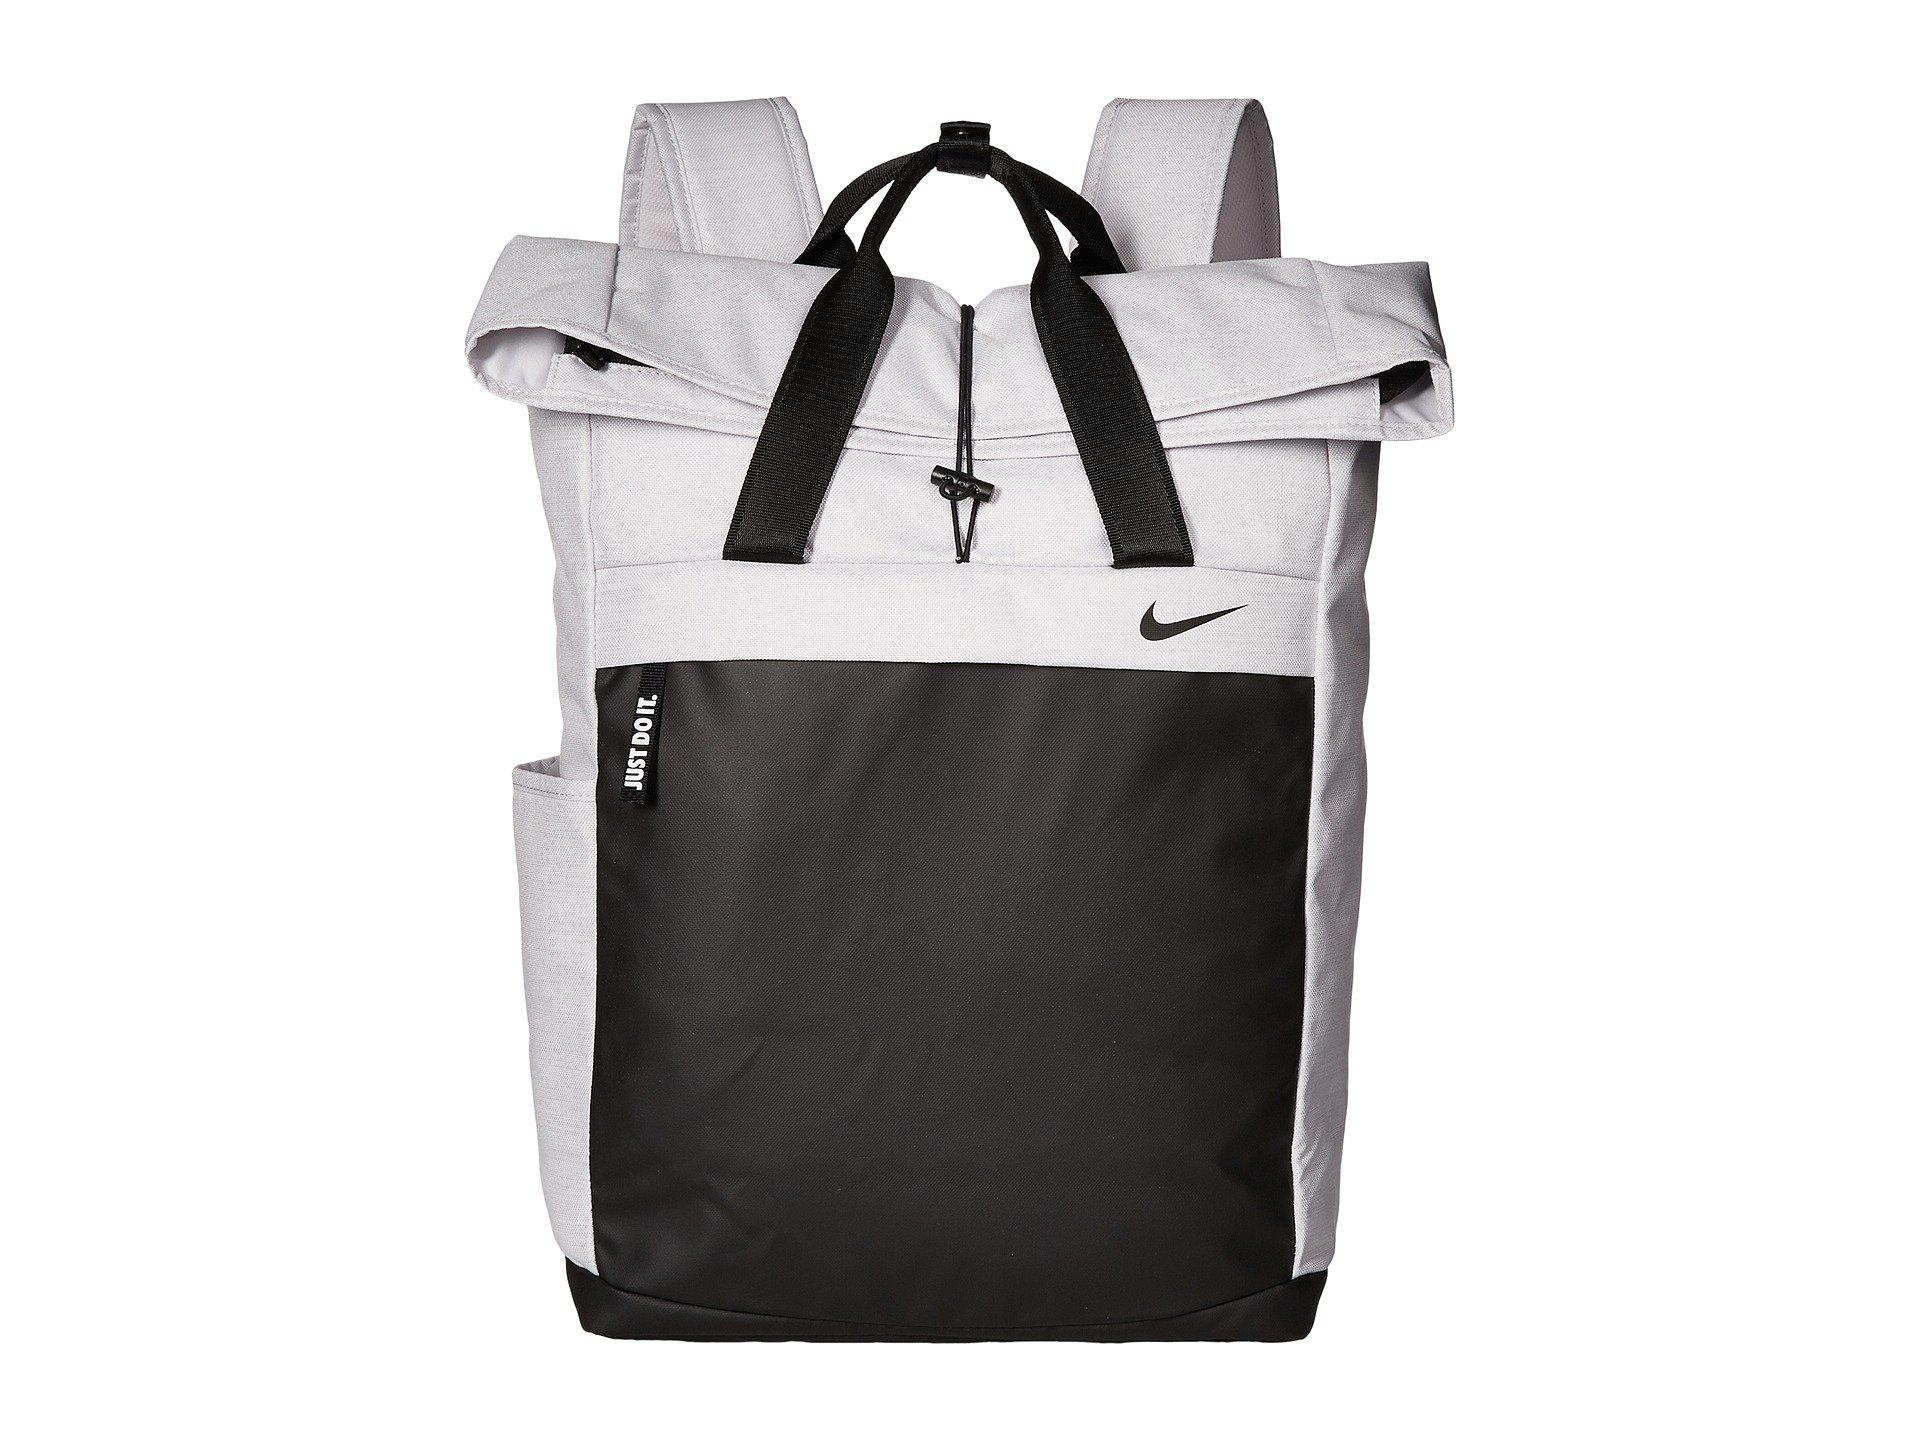 Lyst - Nike Radiate Backpack (black black black) Backpack Bags in Black fd2b3a550b938